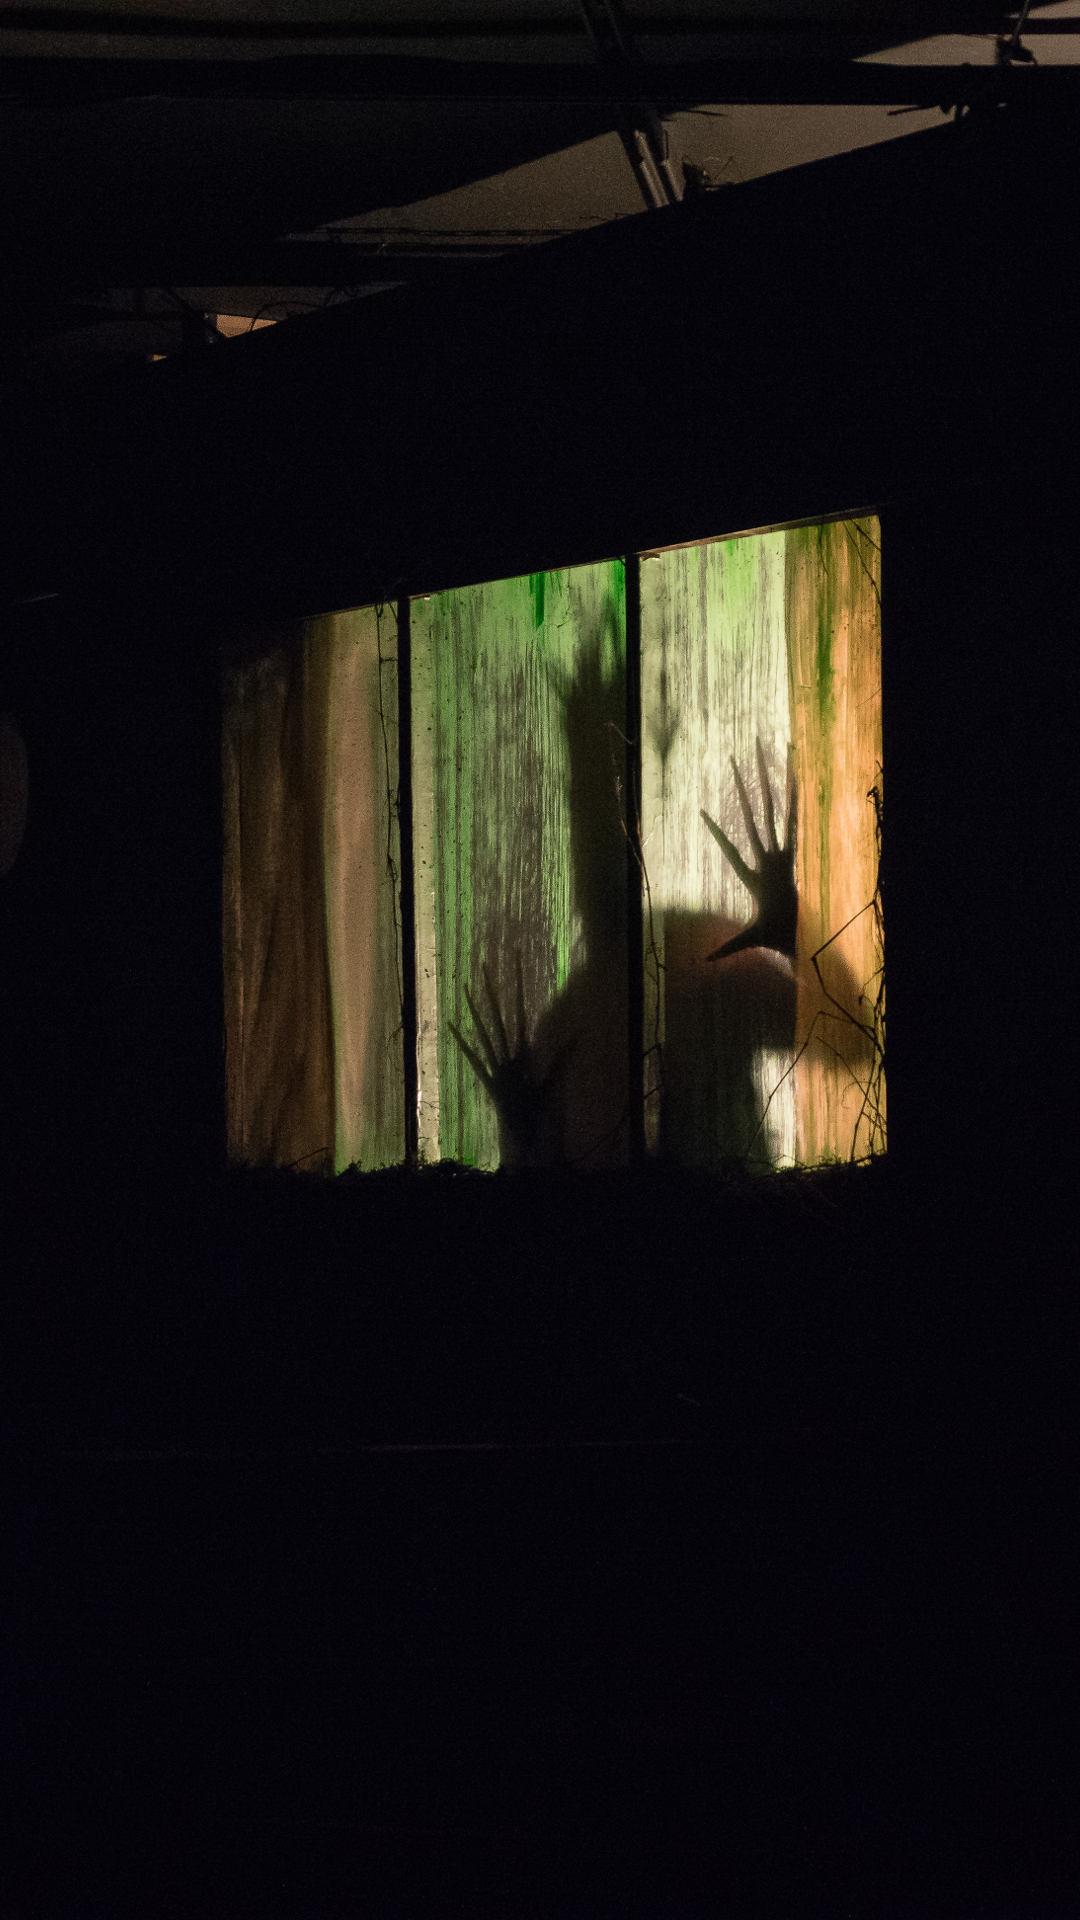 NIGHT IN ALACHUA COUNTY (WildClaw Theatre, 2017)